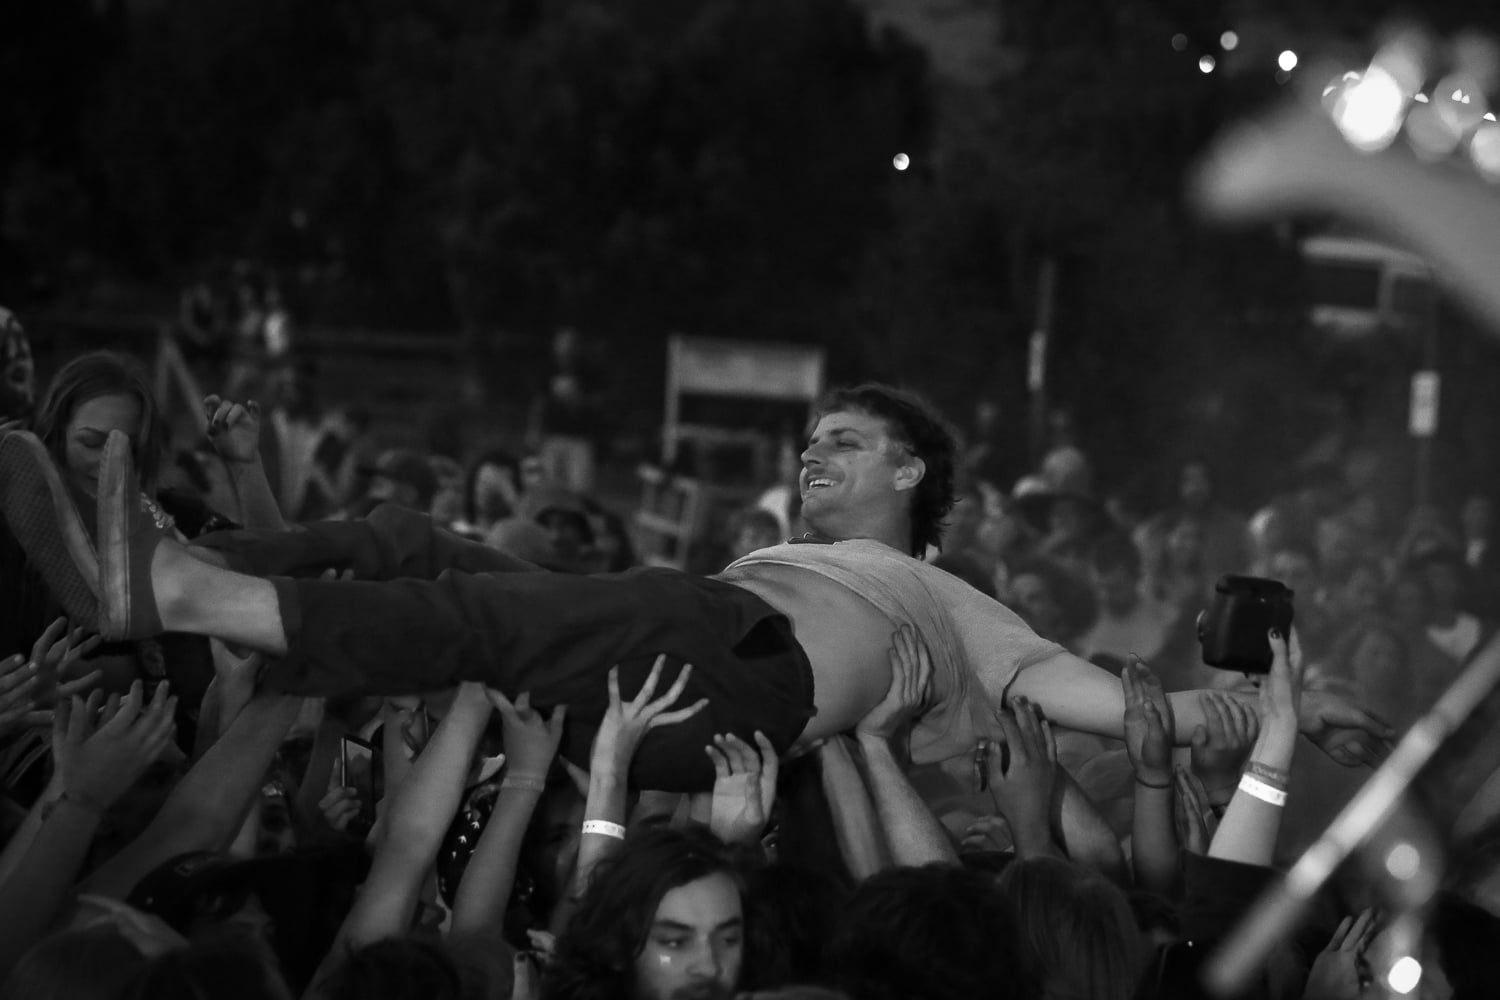 Mac Demarco surfing during King Gizzard and the Lizard Wizard